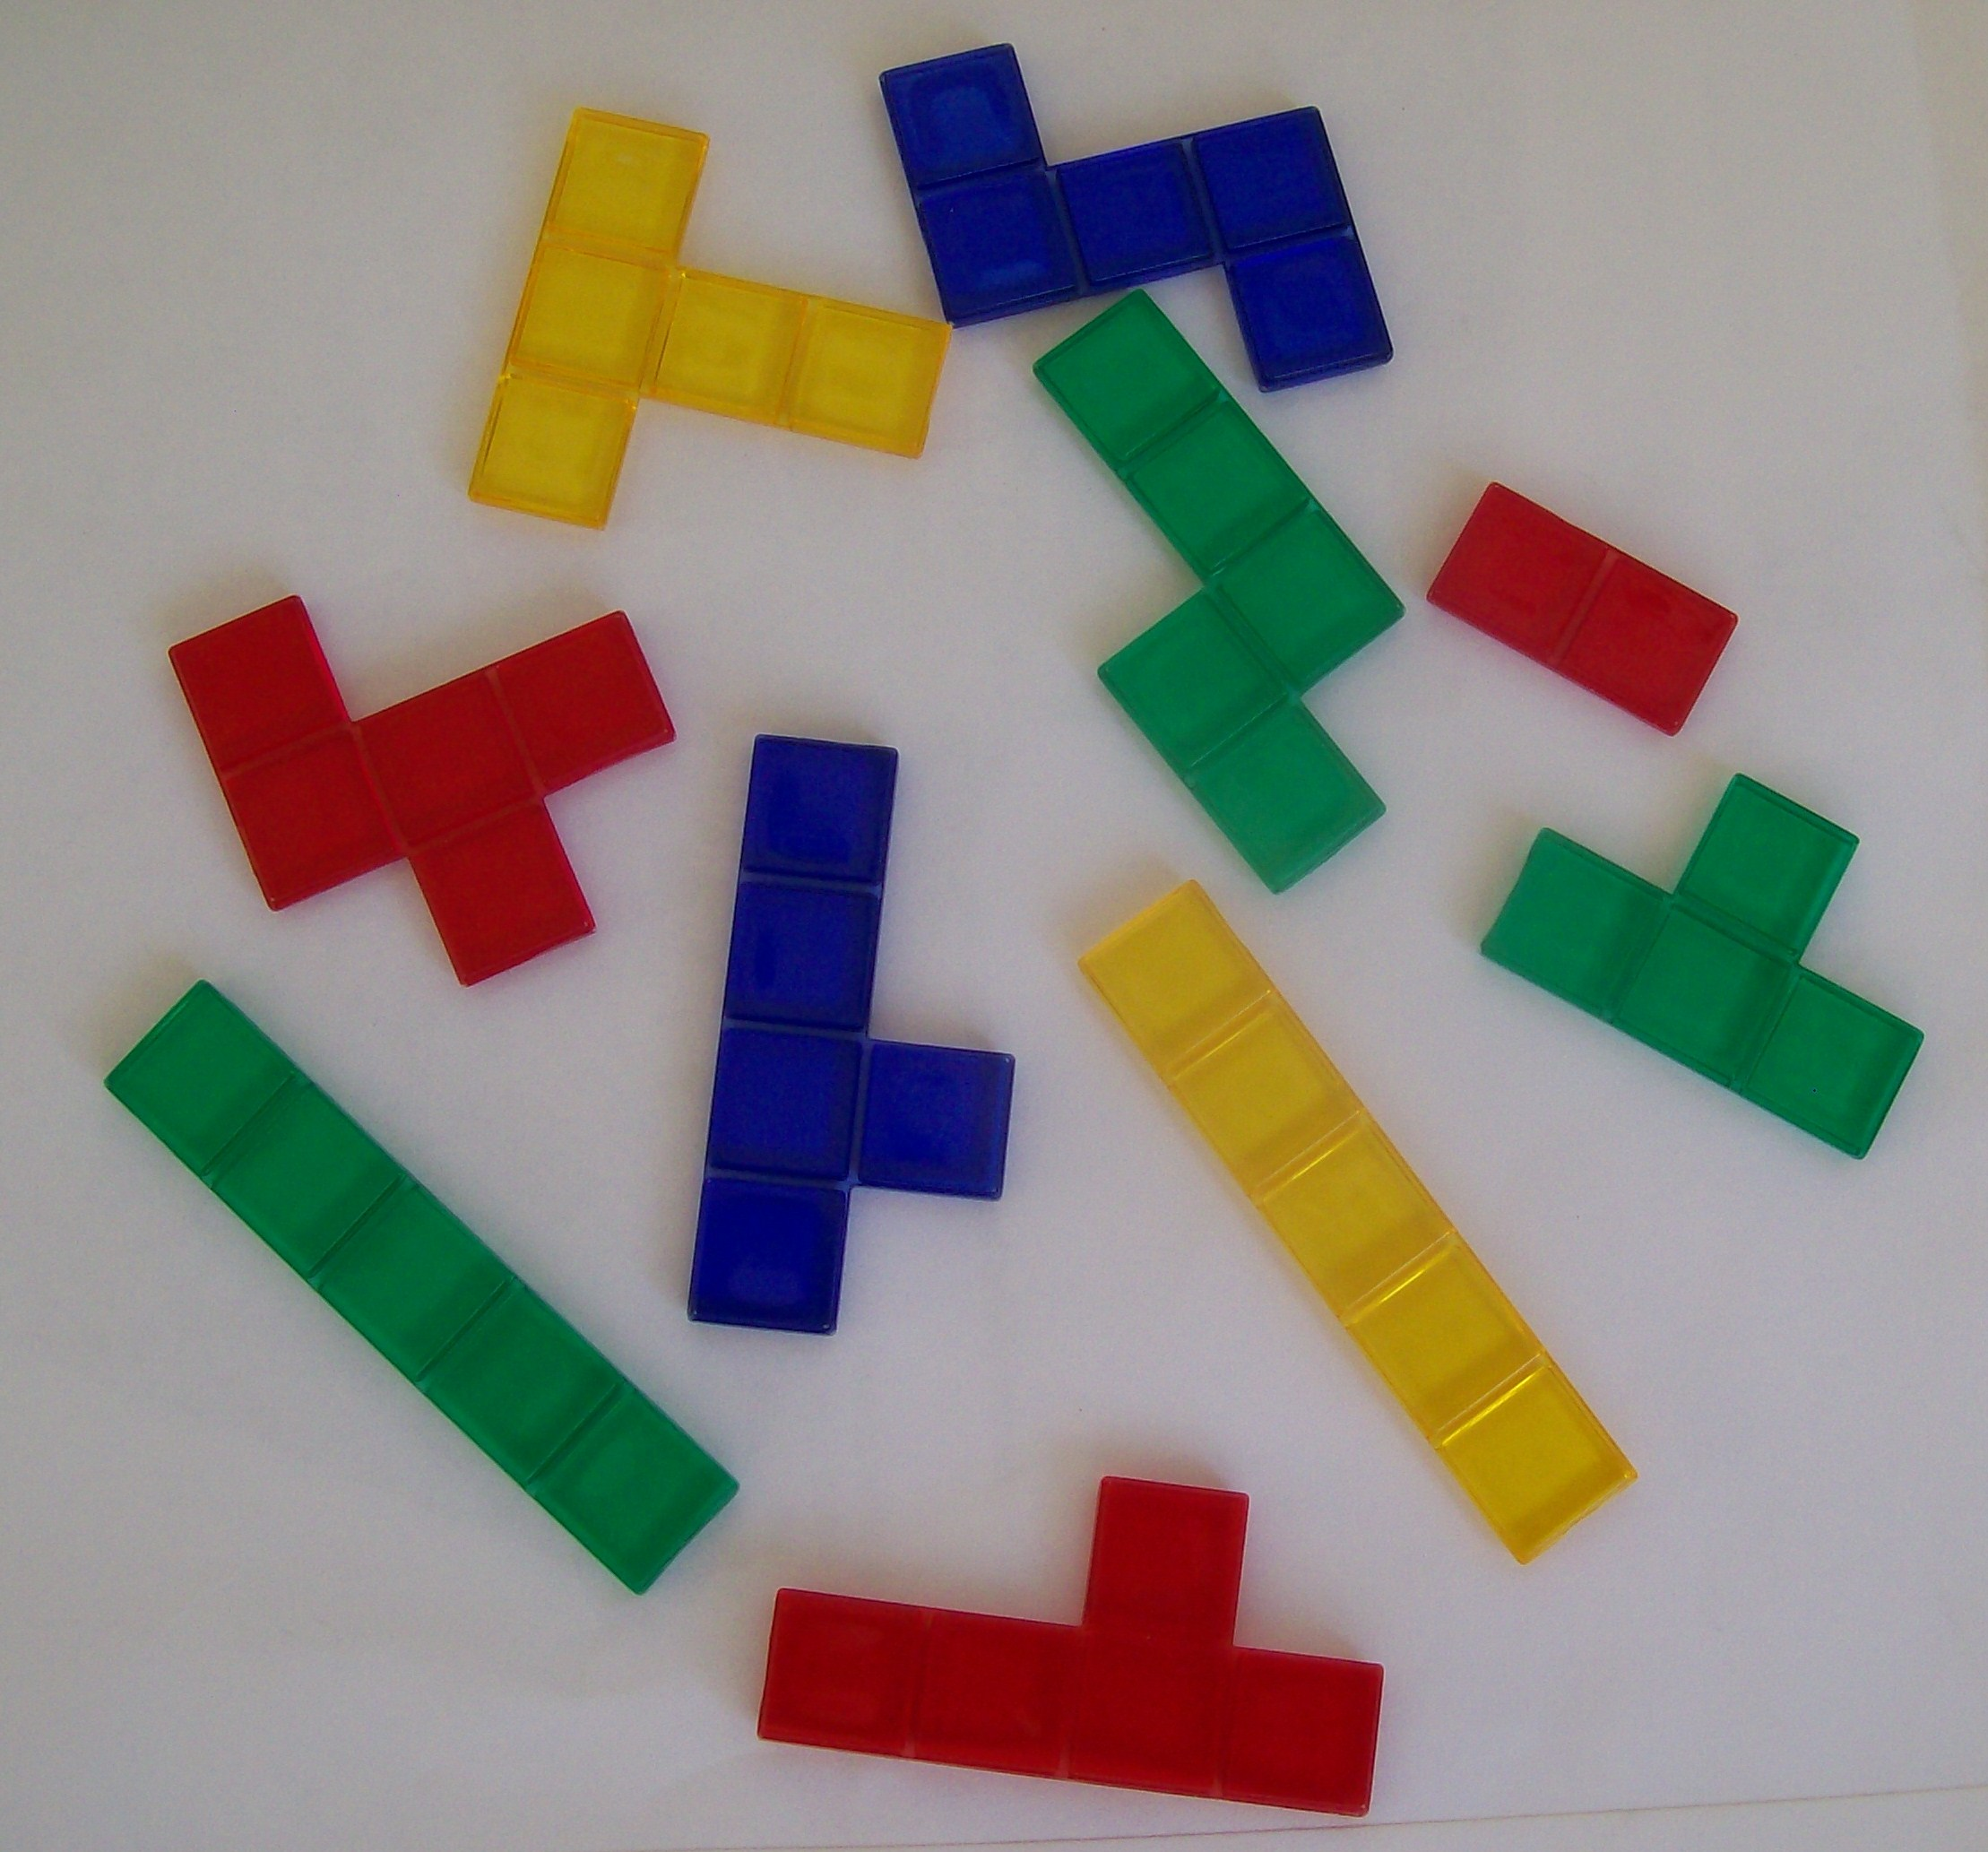 Blokus: Award Winning Game and Great for Family Game Night